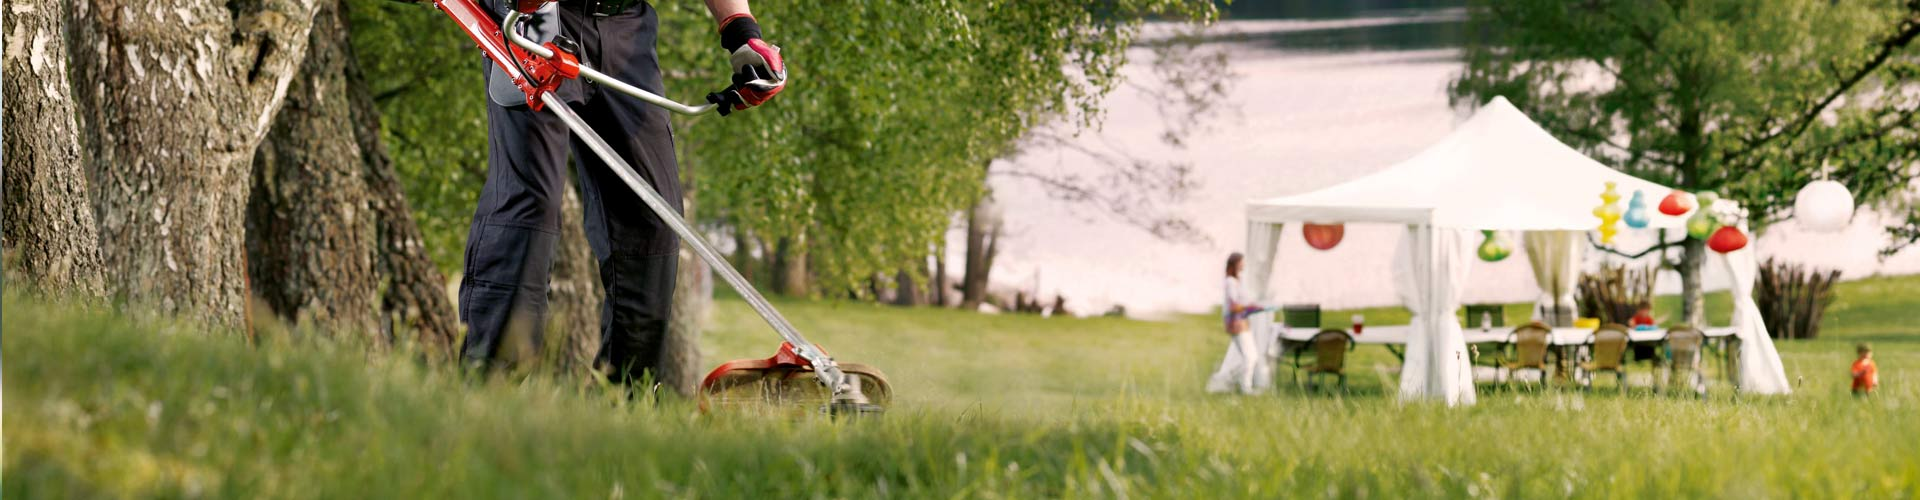 Grass trimmer parts & accessories